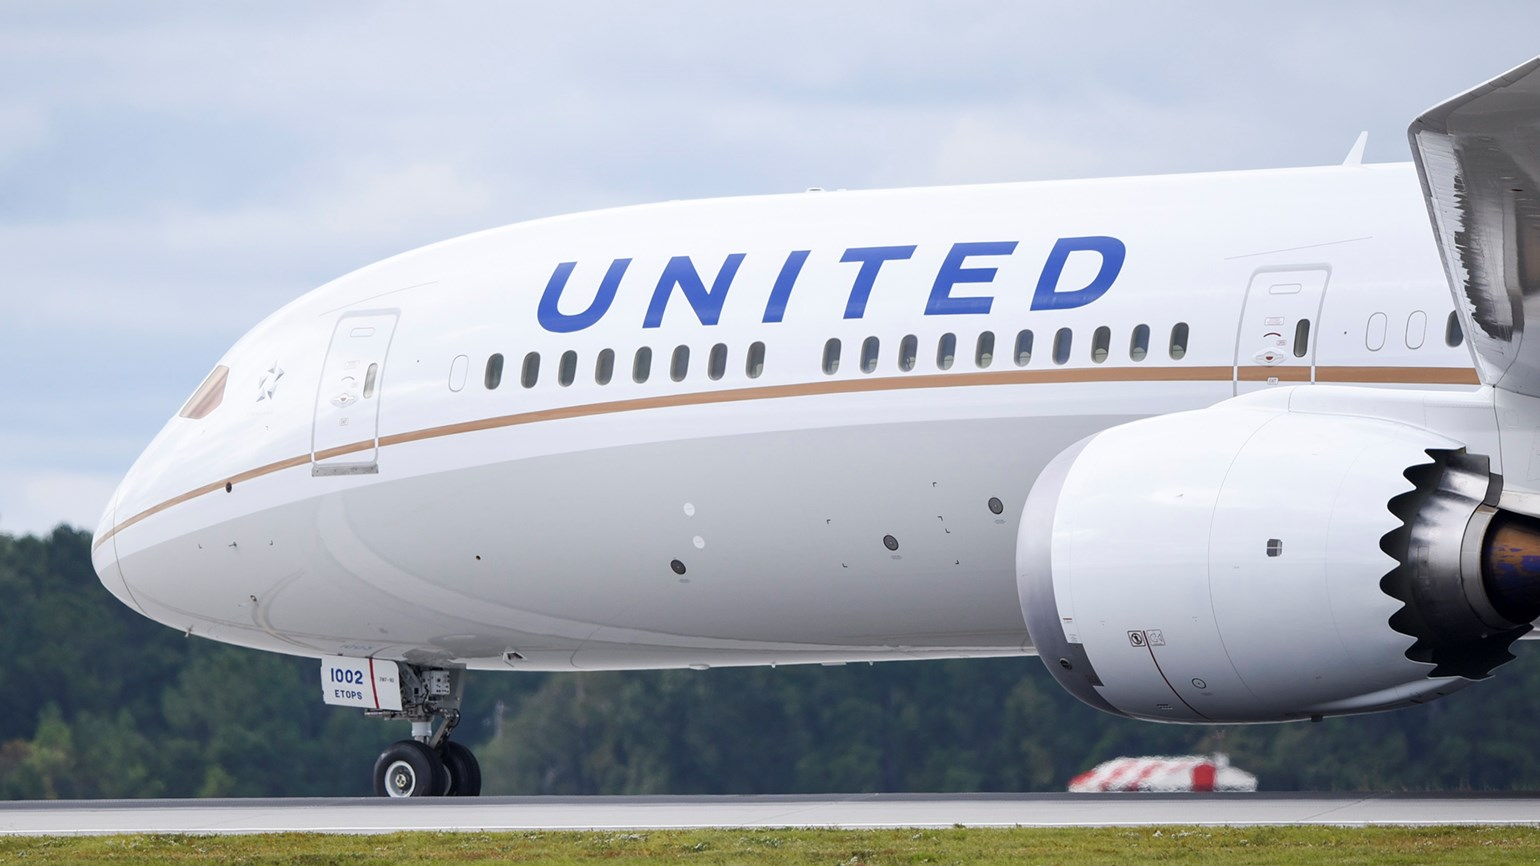 United scraps anti-consumer refund policy for international flights